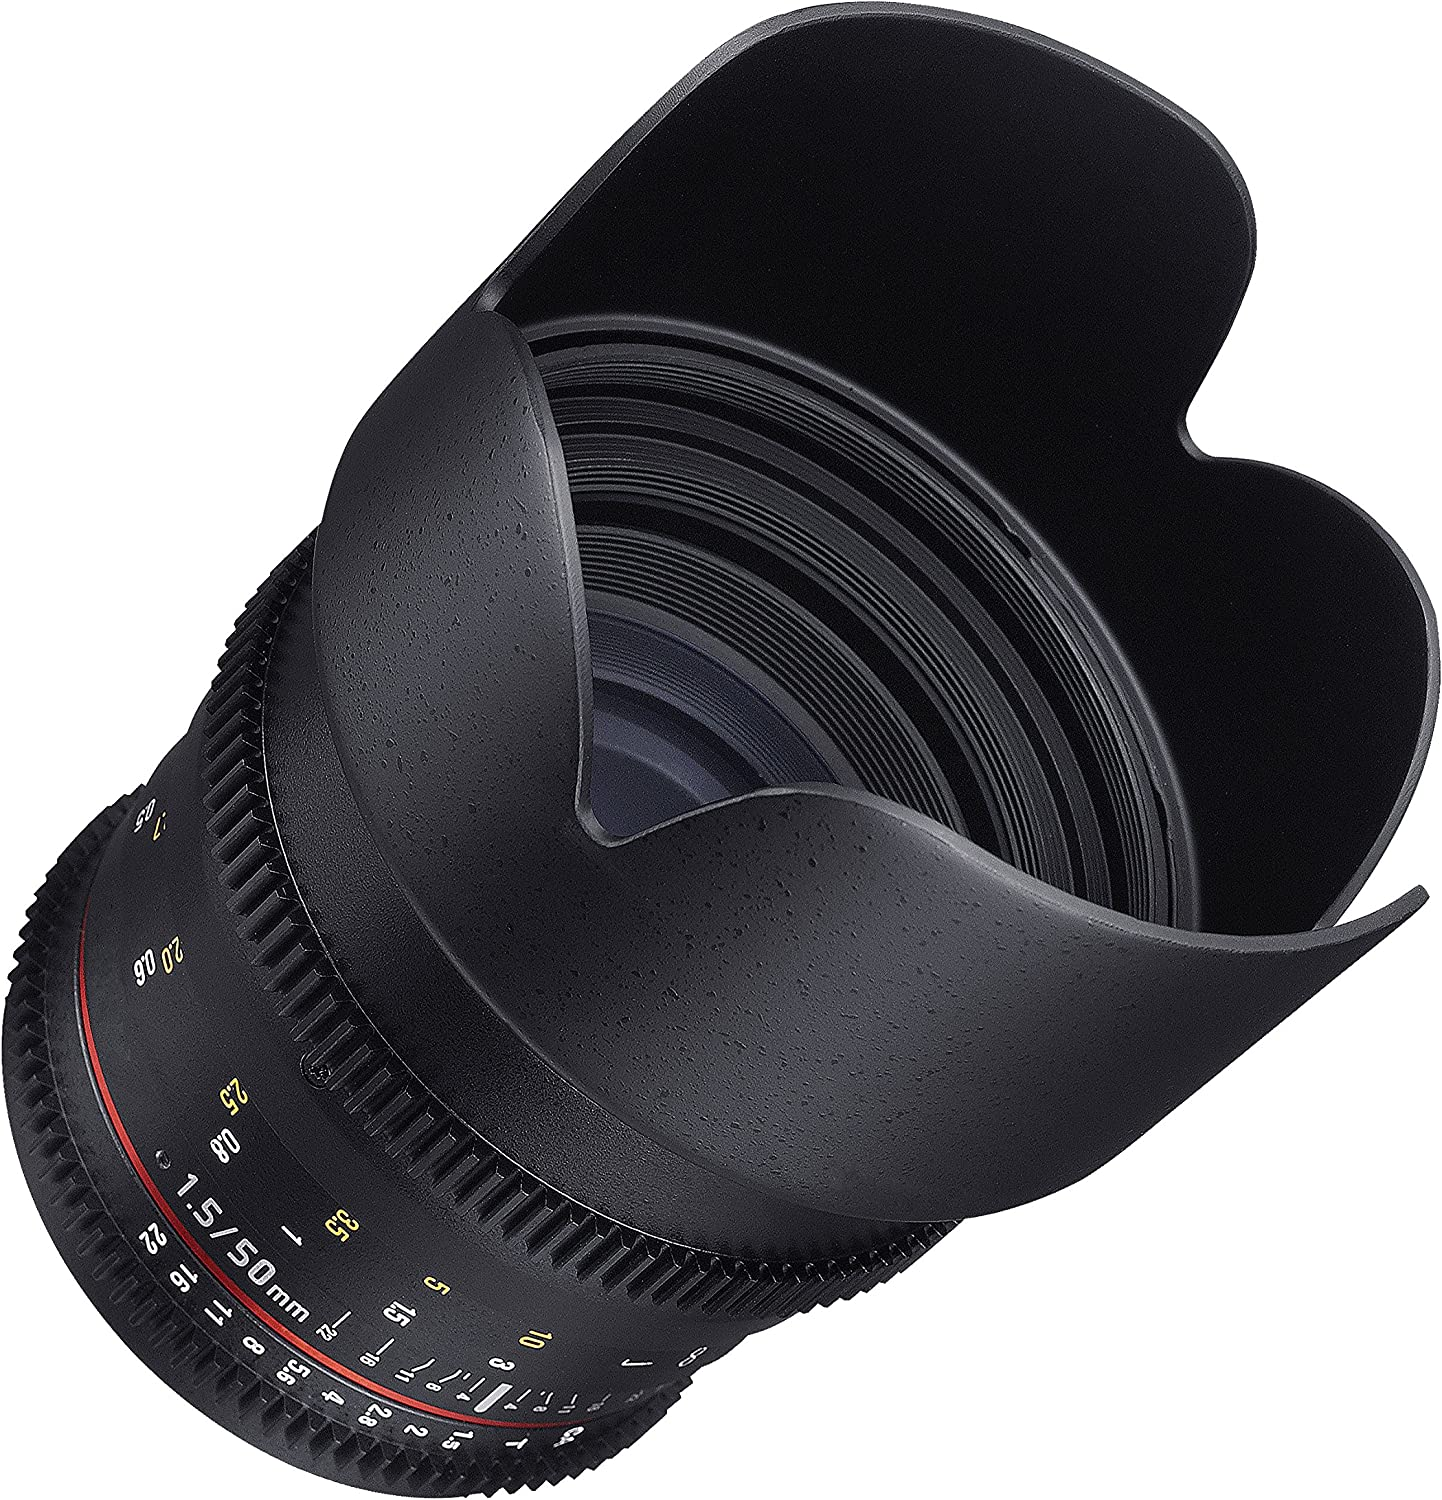 Samyang Cine DS SYDS50M-MFT 50mm T1.5 AS IF UMC Full Frame Cine Lens for Olympus and Panasonic Micro Four Thirds